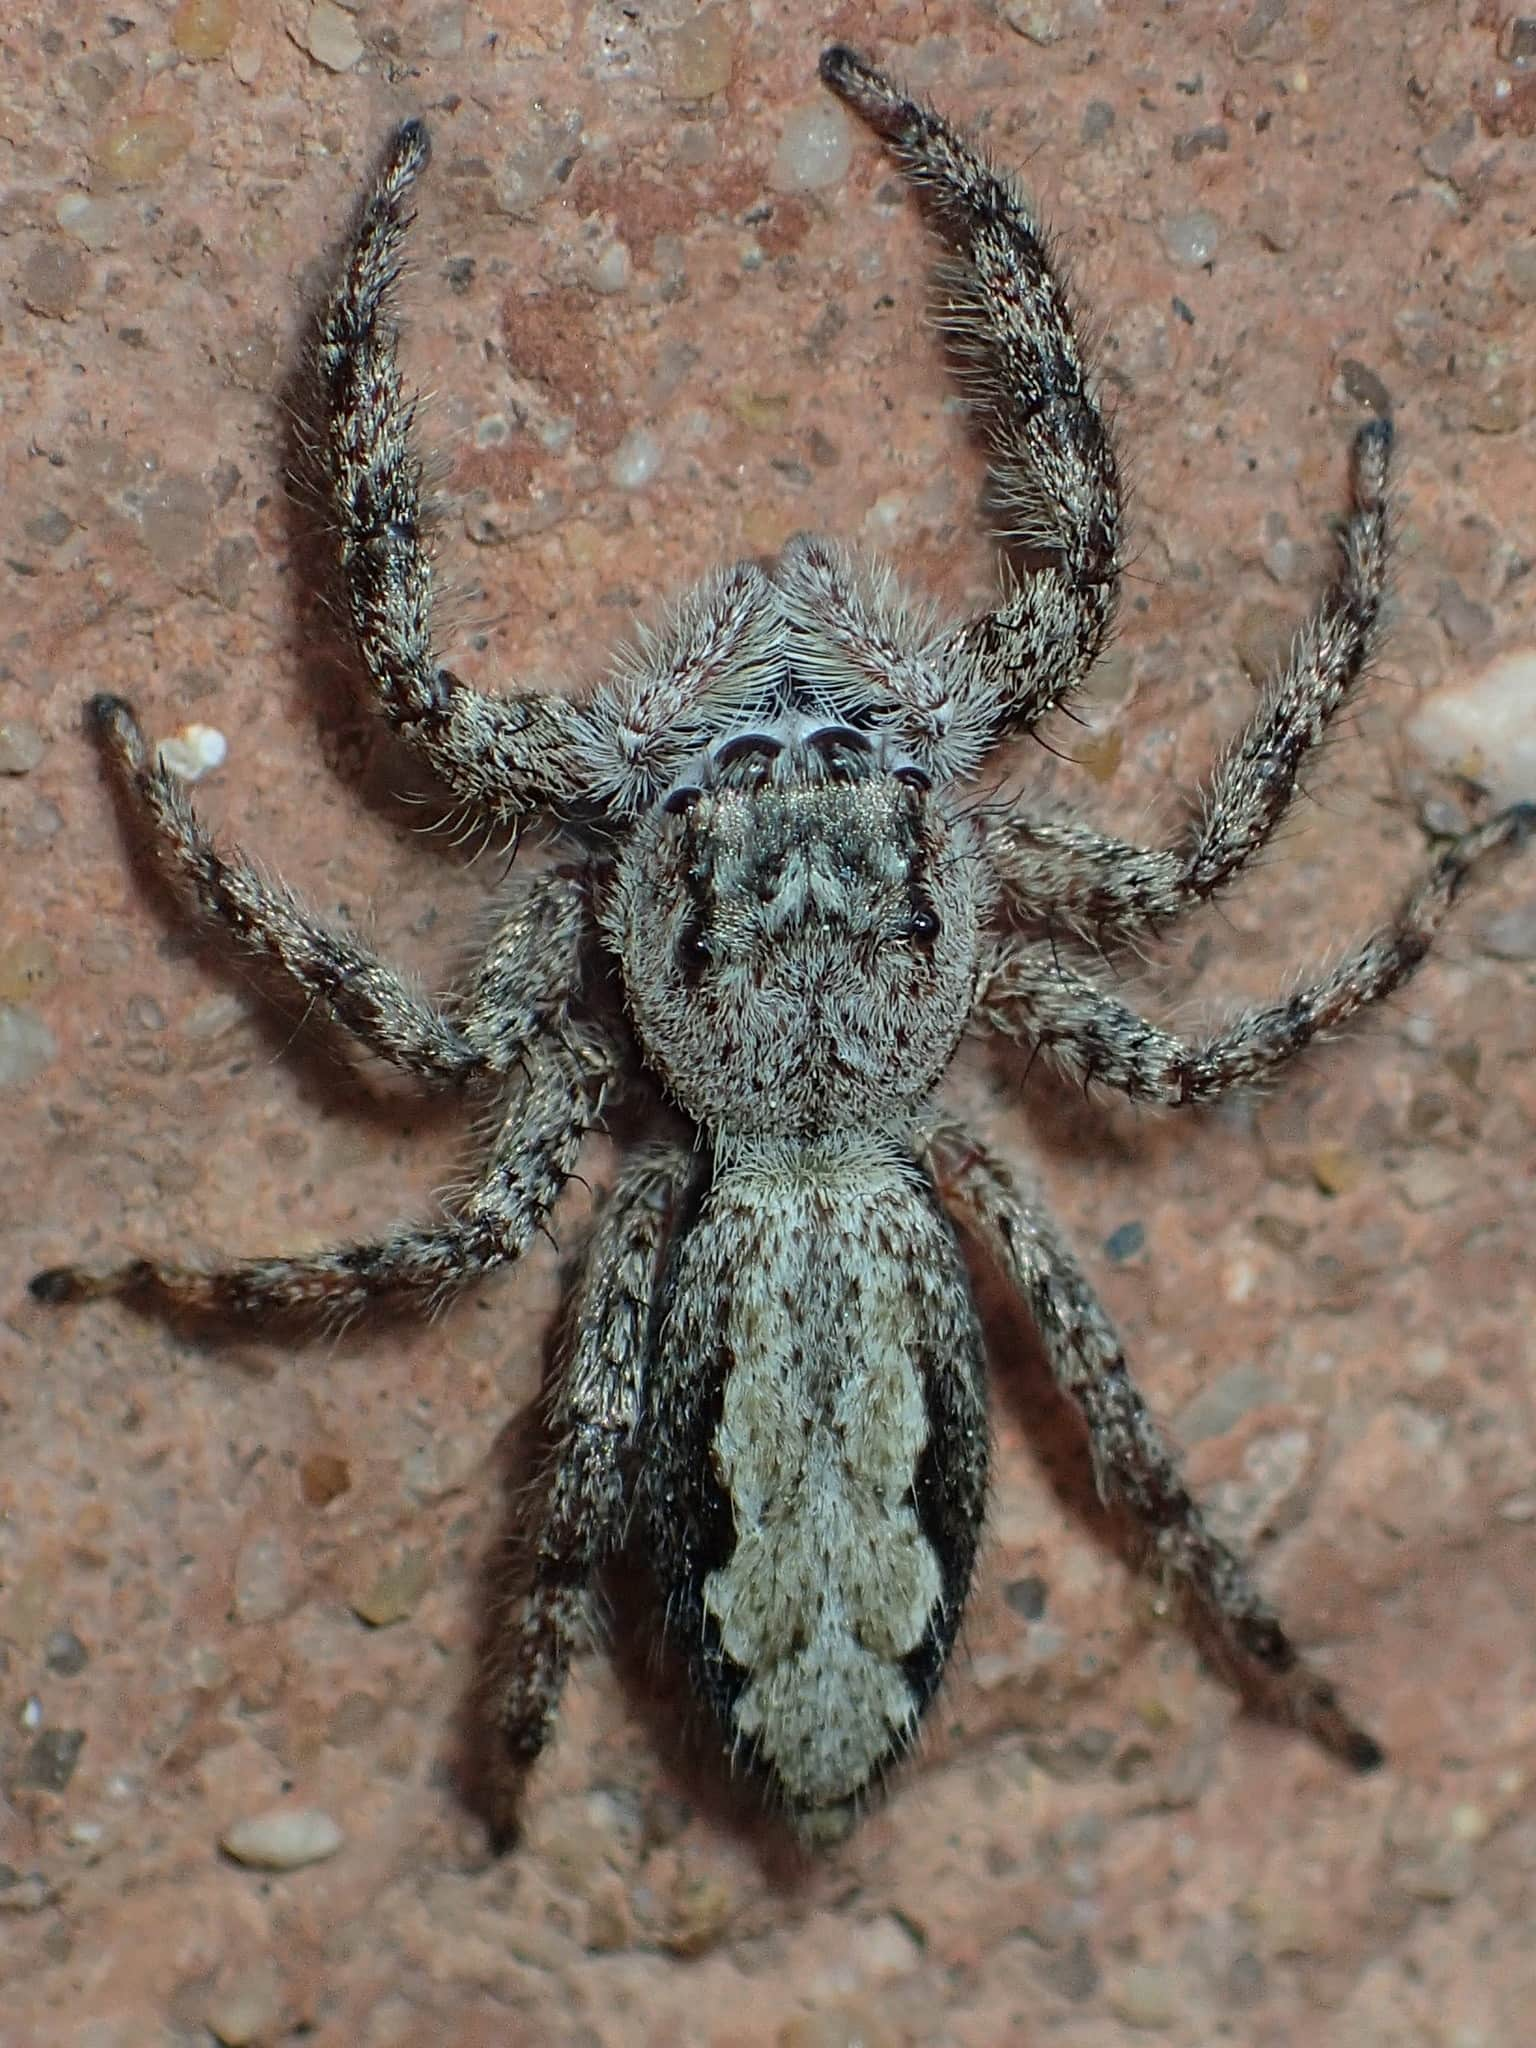 Picture of Platycryptus undatus (Tan Jumping Spider) - Female - Dorsal,Eyes